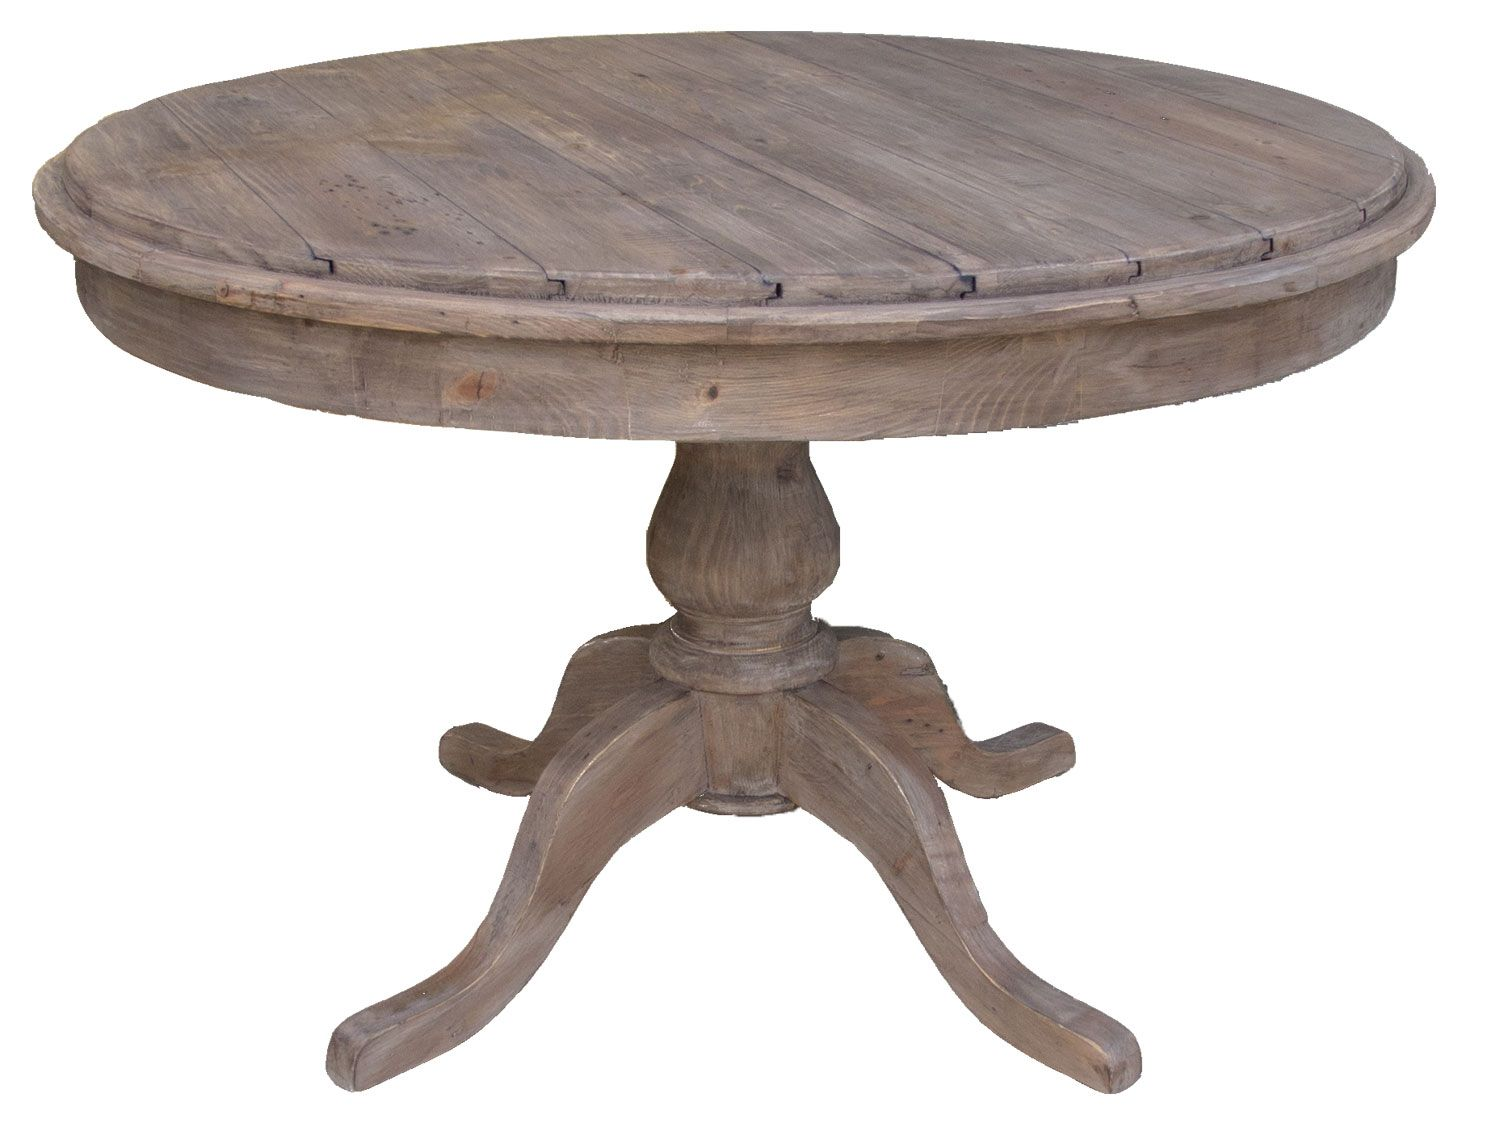 Double crank oval dining table at high fashion home industrial chic - Rustic Round Dining Table With Leaf Rustic Reclaimed Wood Dining